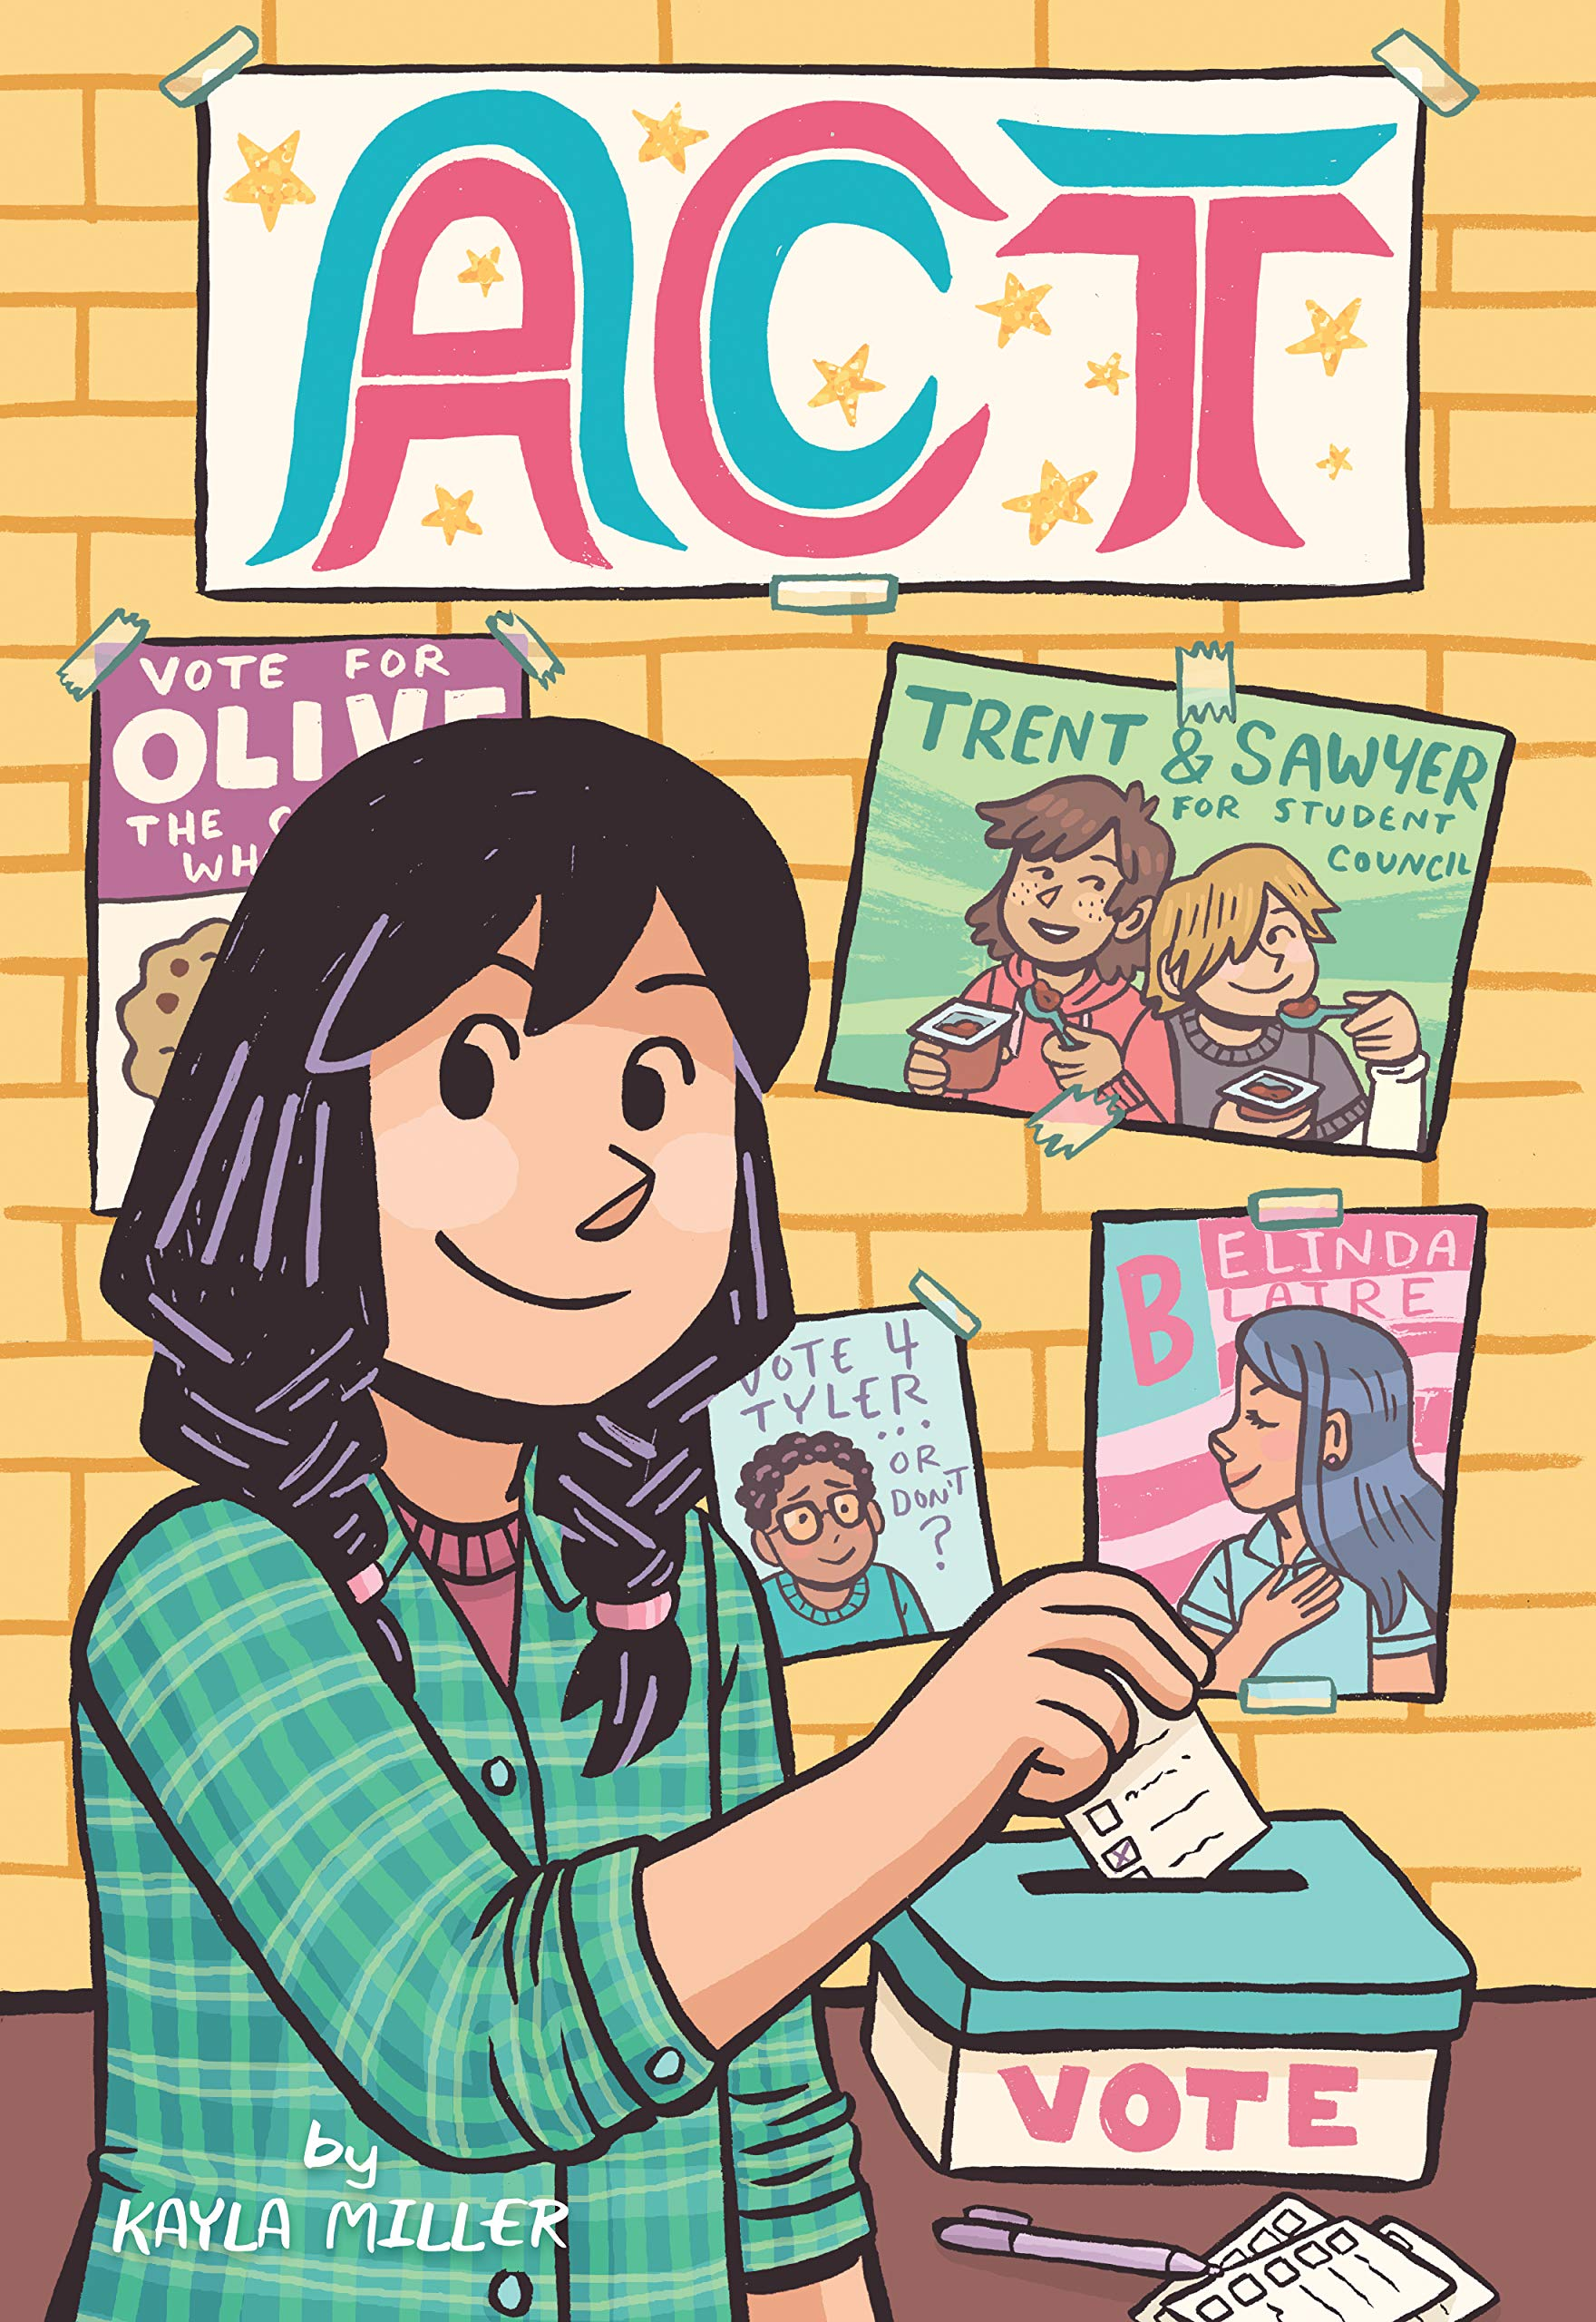 Cover art for Act, showing a young person casting their vote for a school election